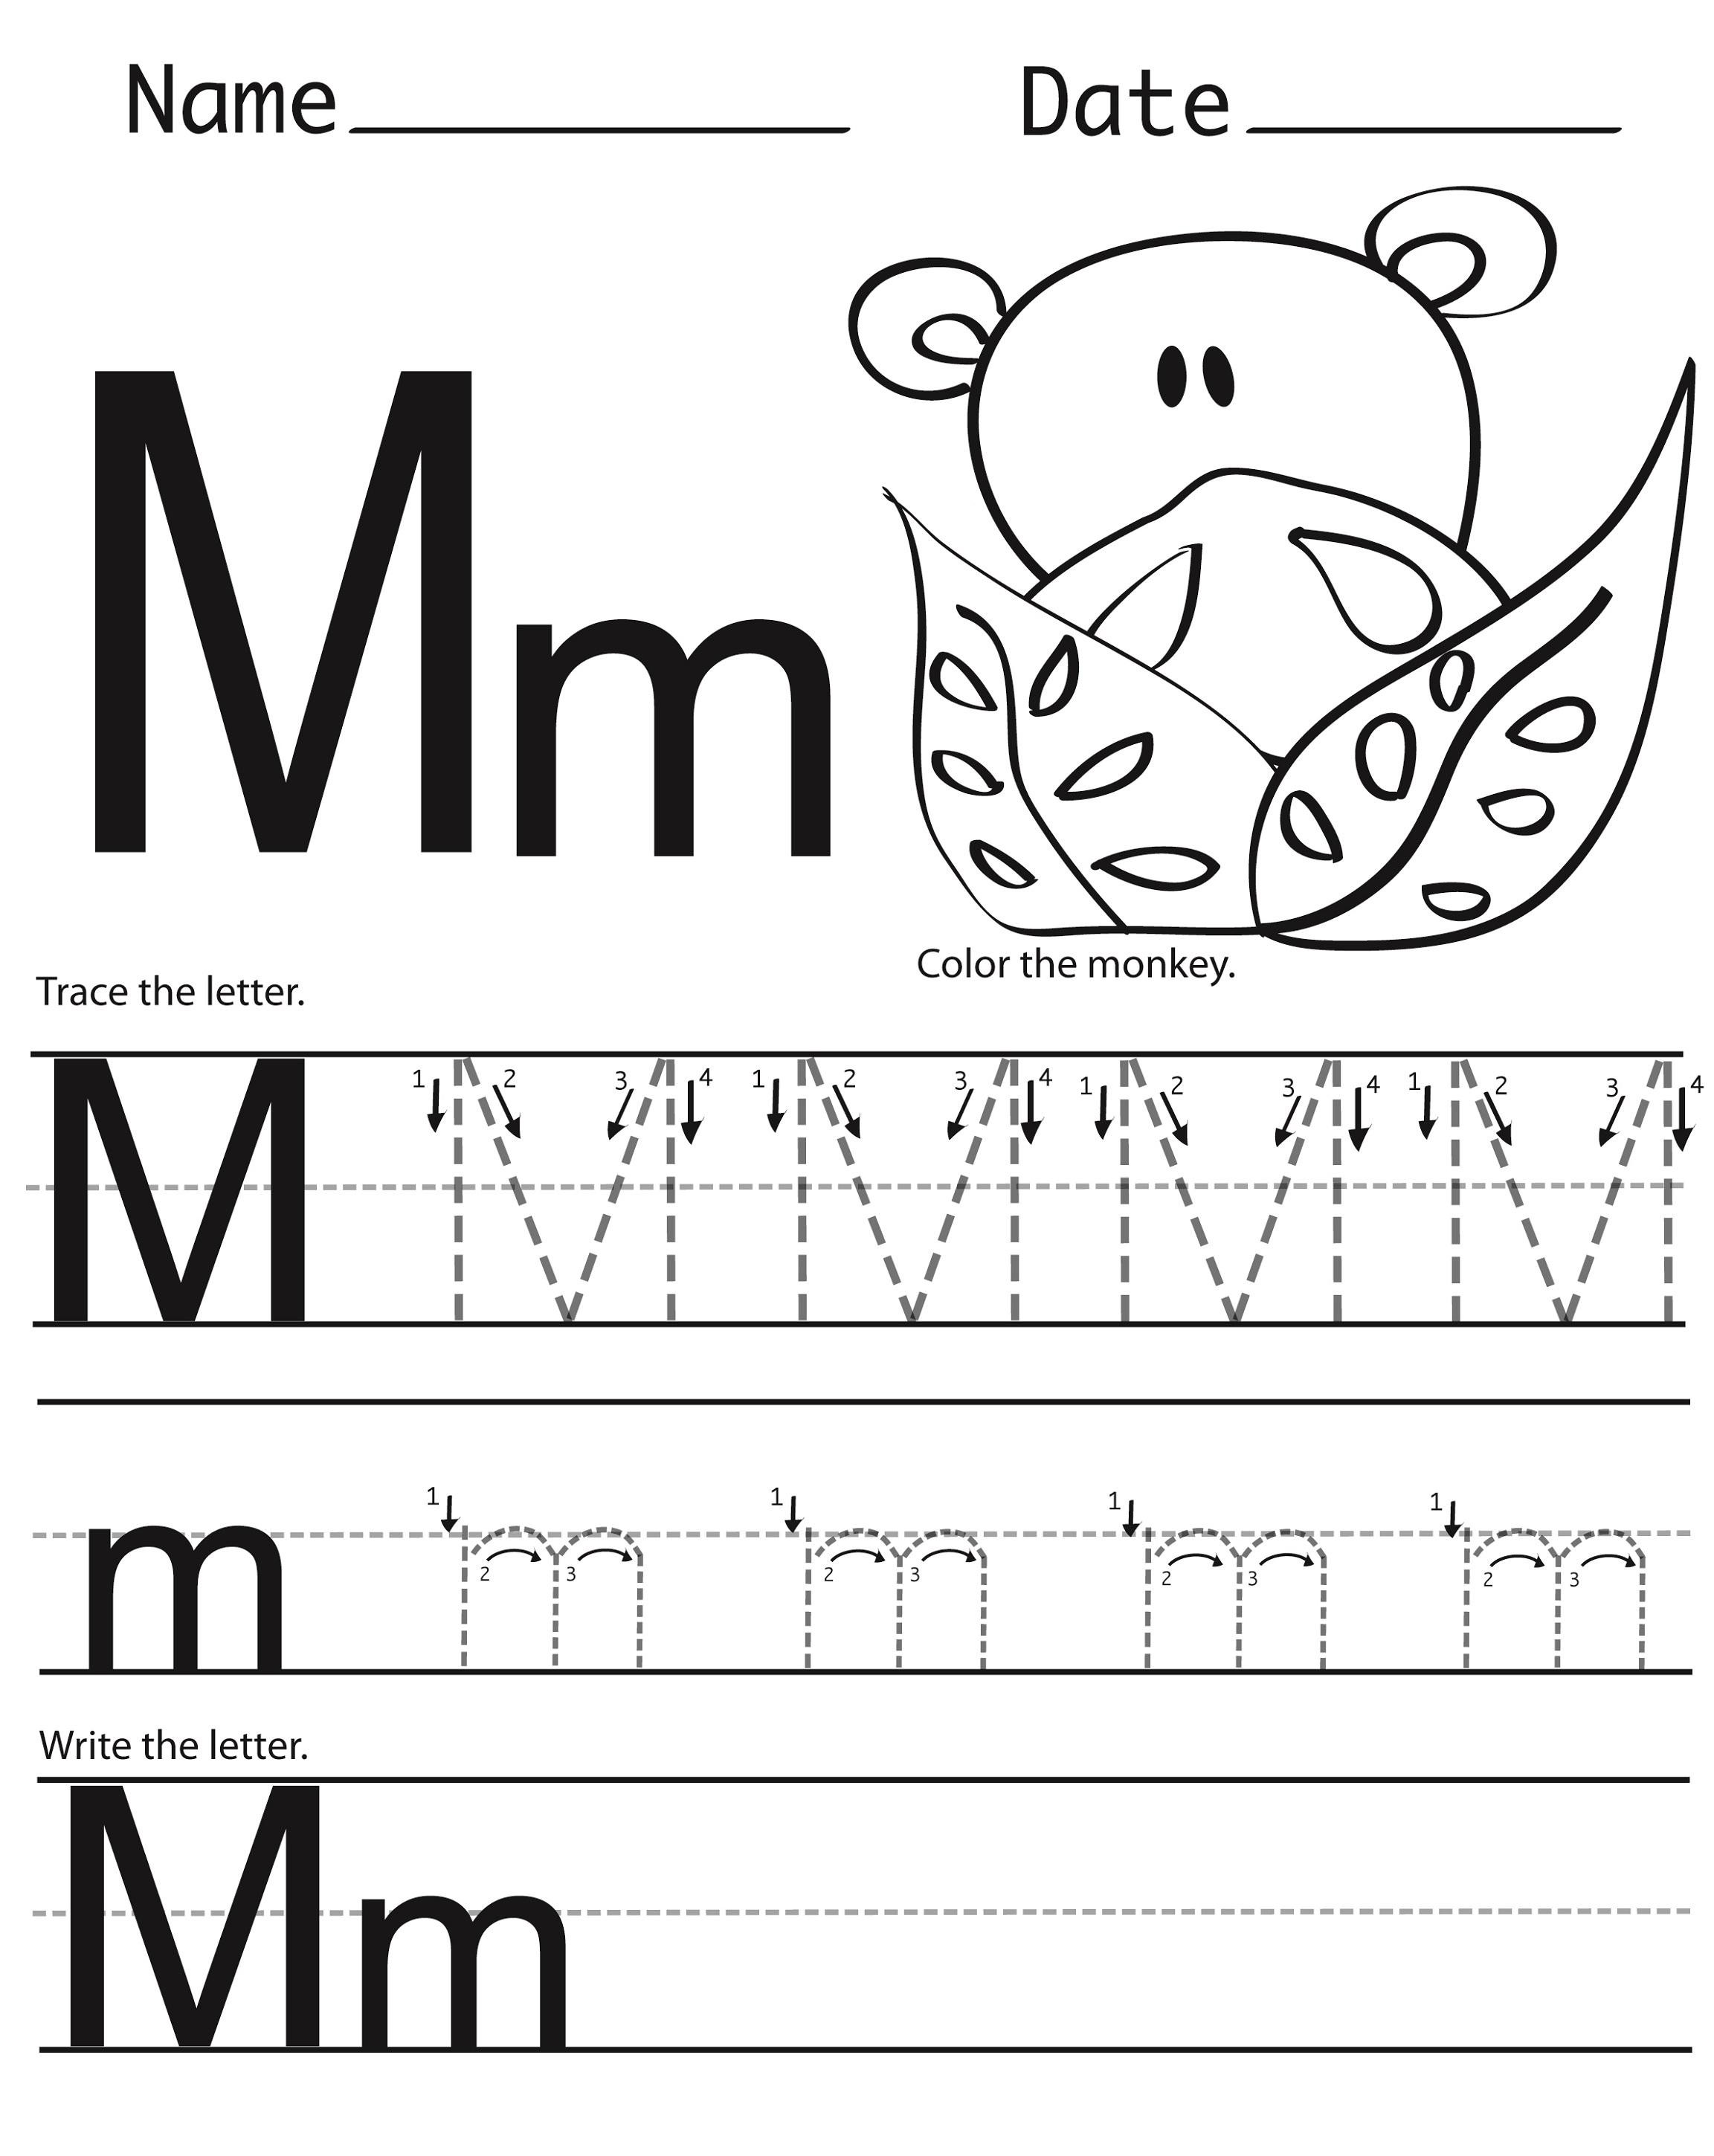 Letter M Worksheets for Preschoolers Free Preschool Worksheets Letter M Clover Hatunisi